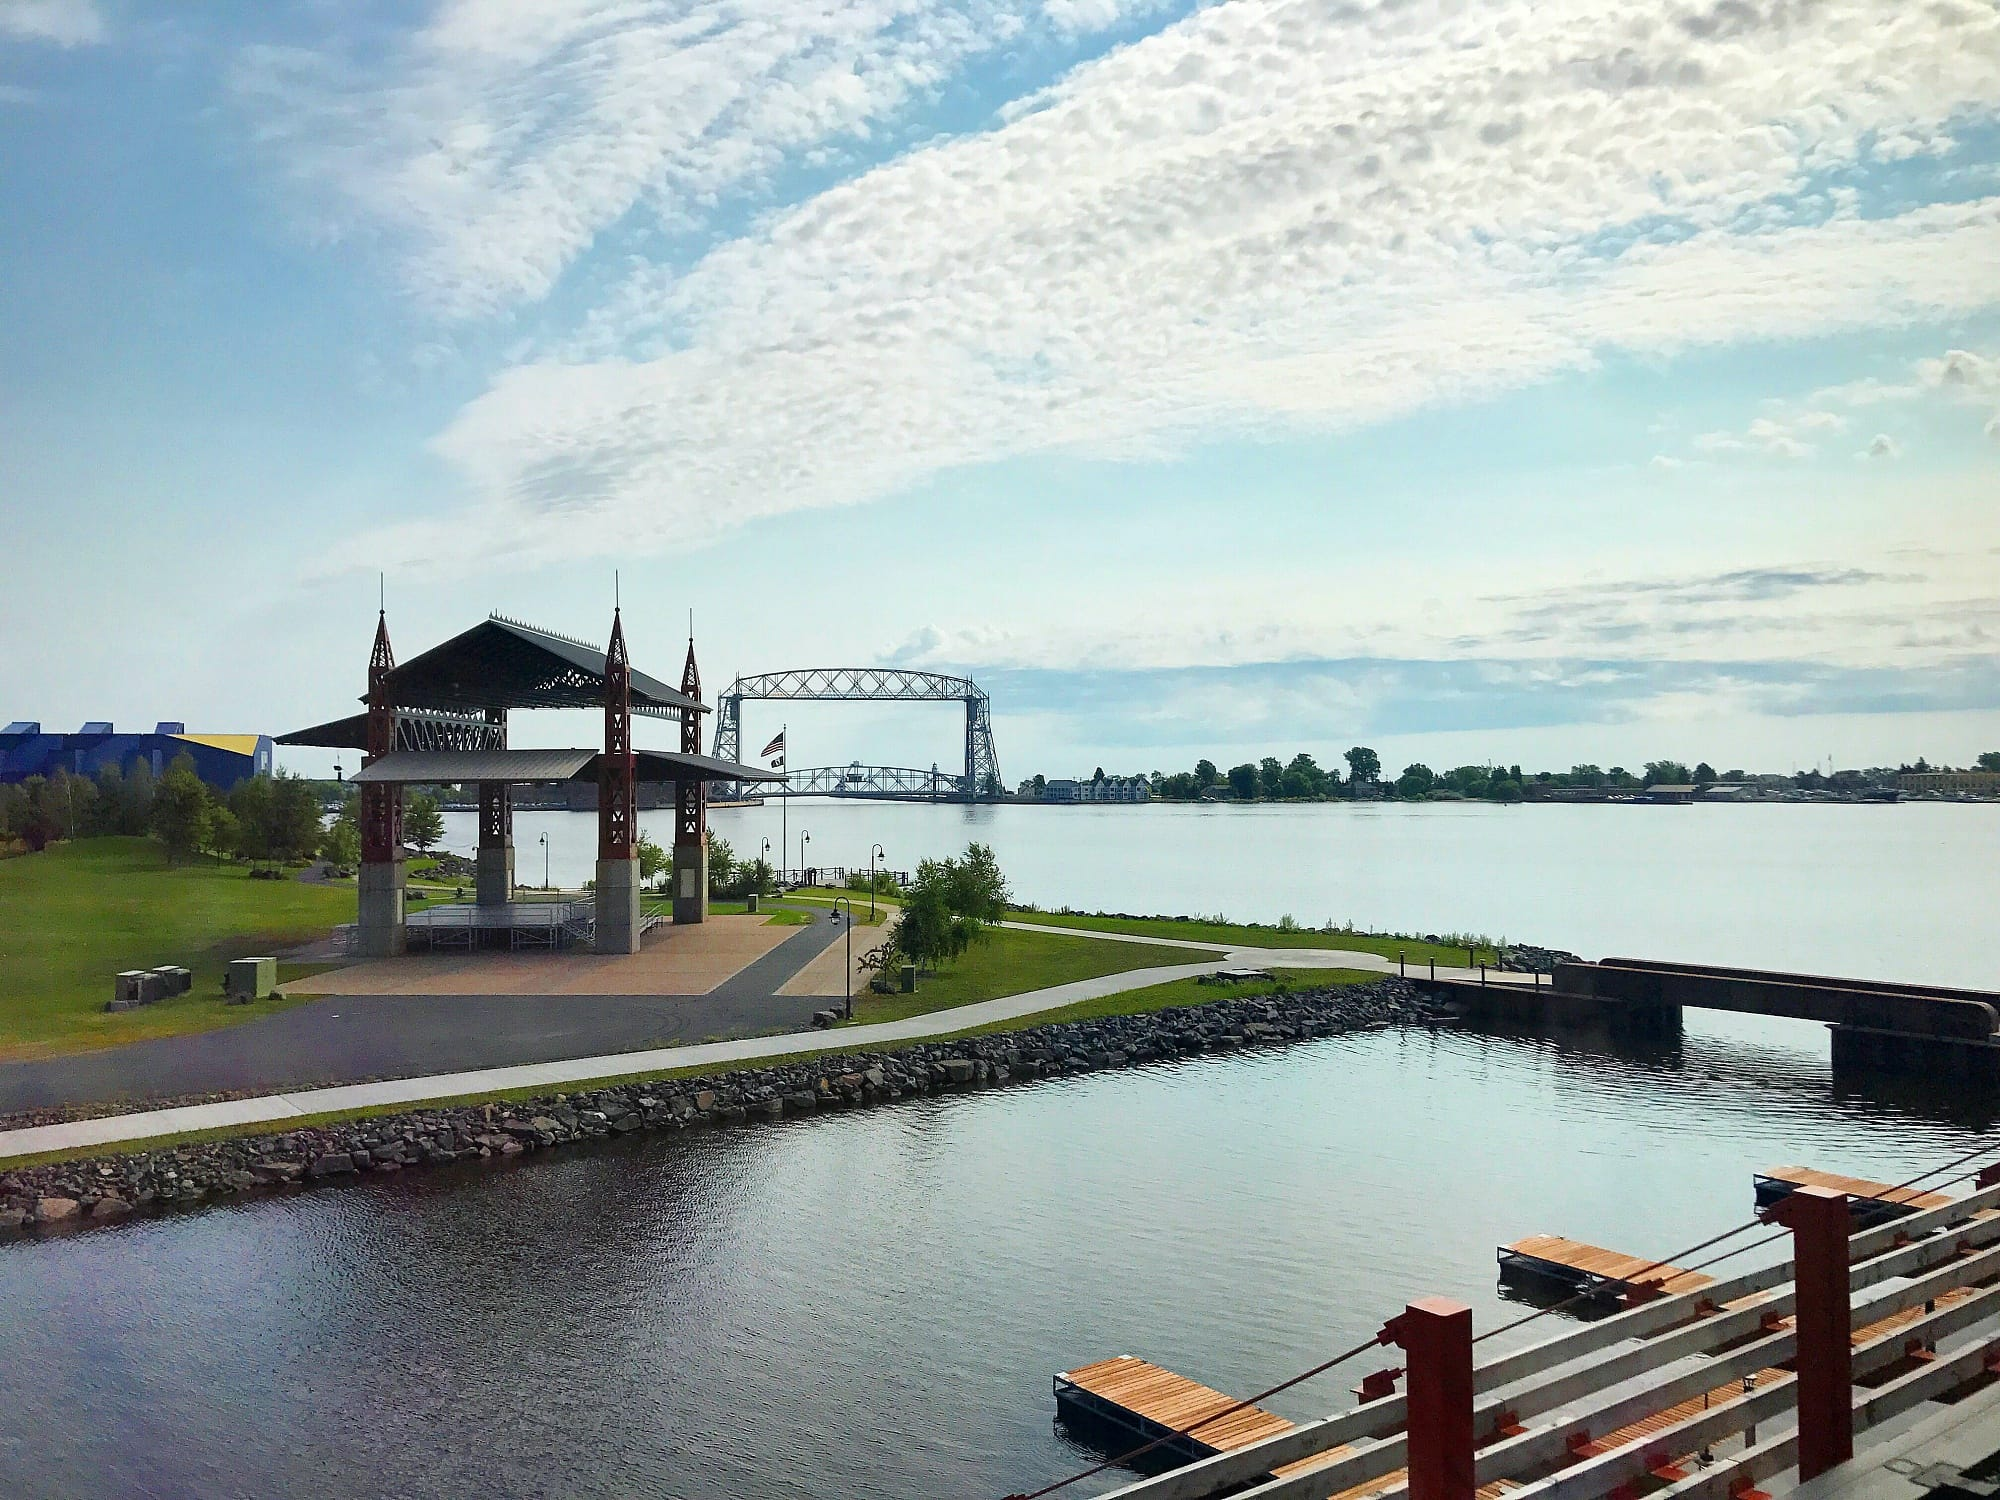 View of Bayfront Festival Park, Lake Superior and the Aerial Bridge from Pier B Resort in Duluth with kids